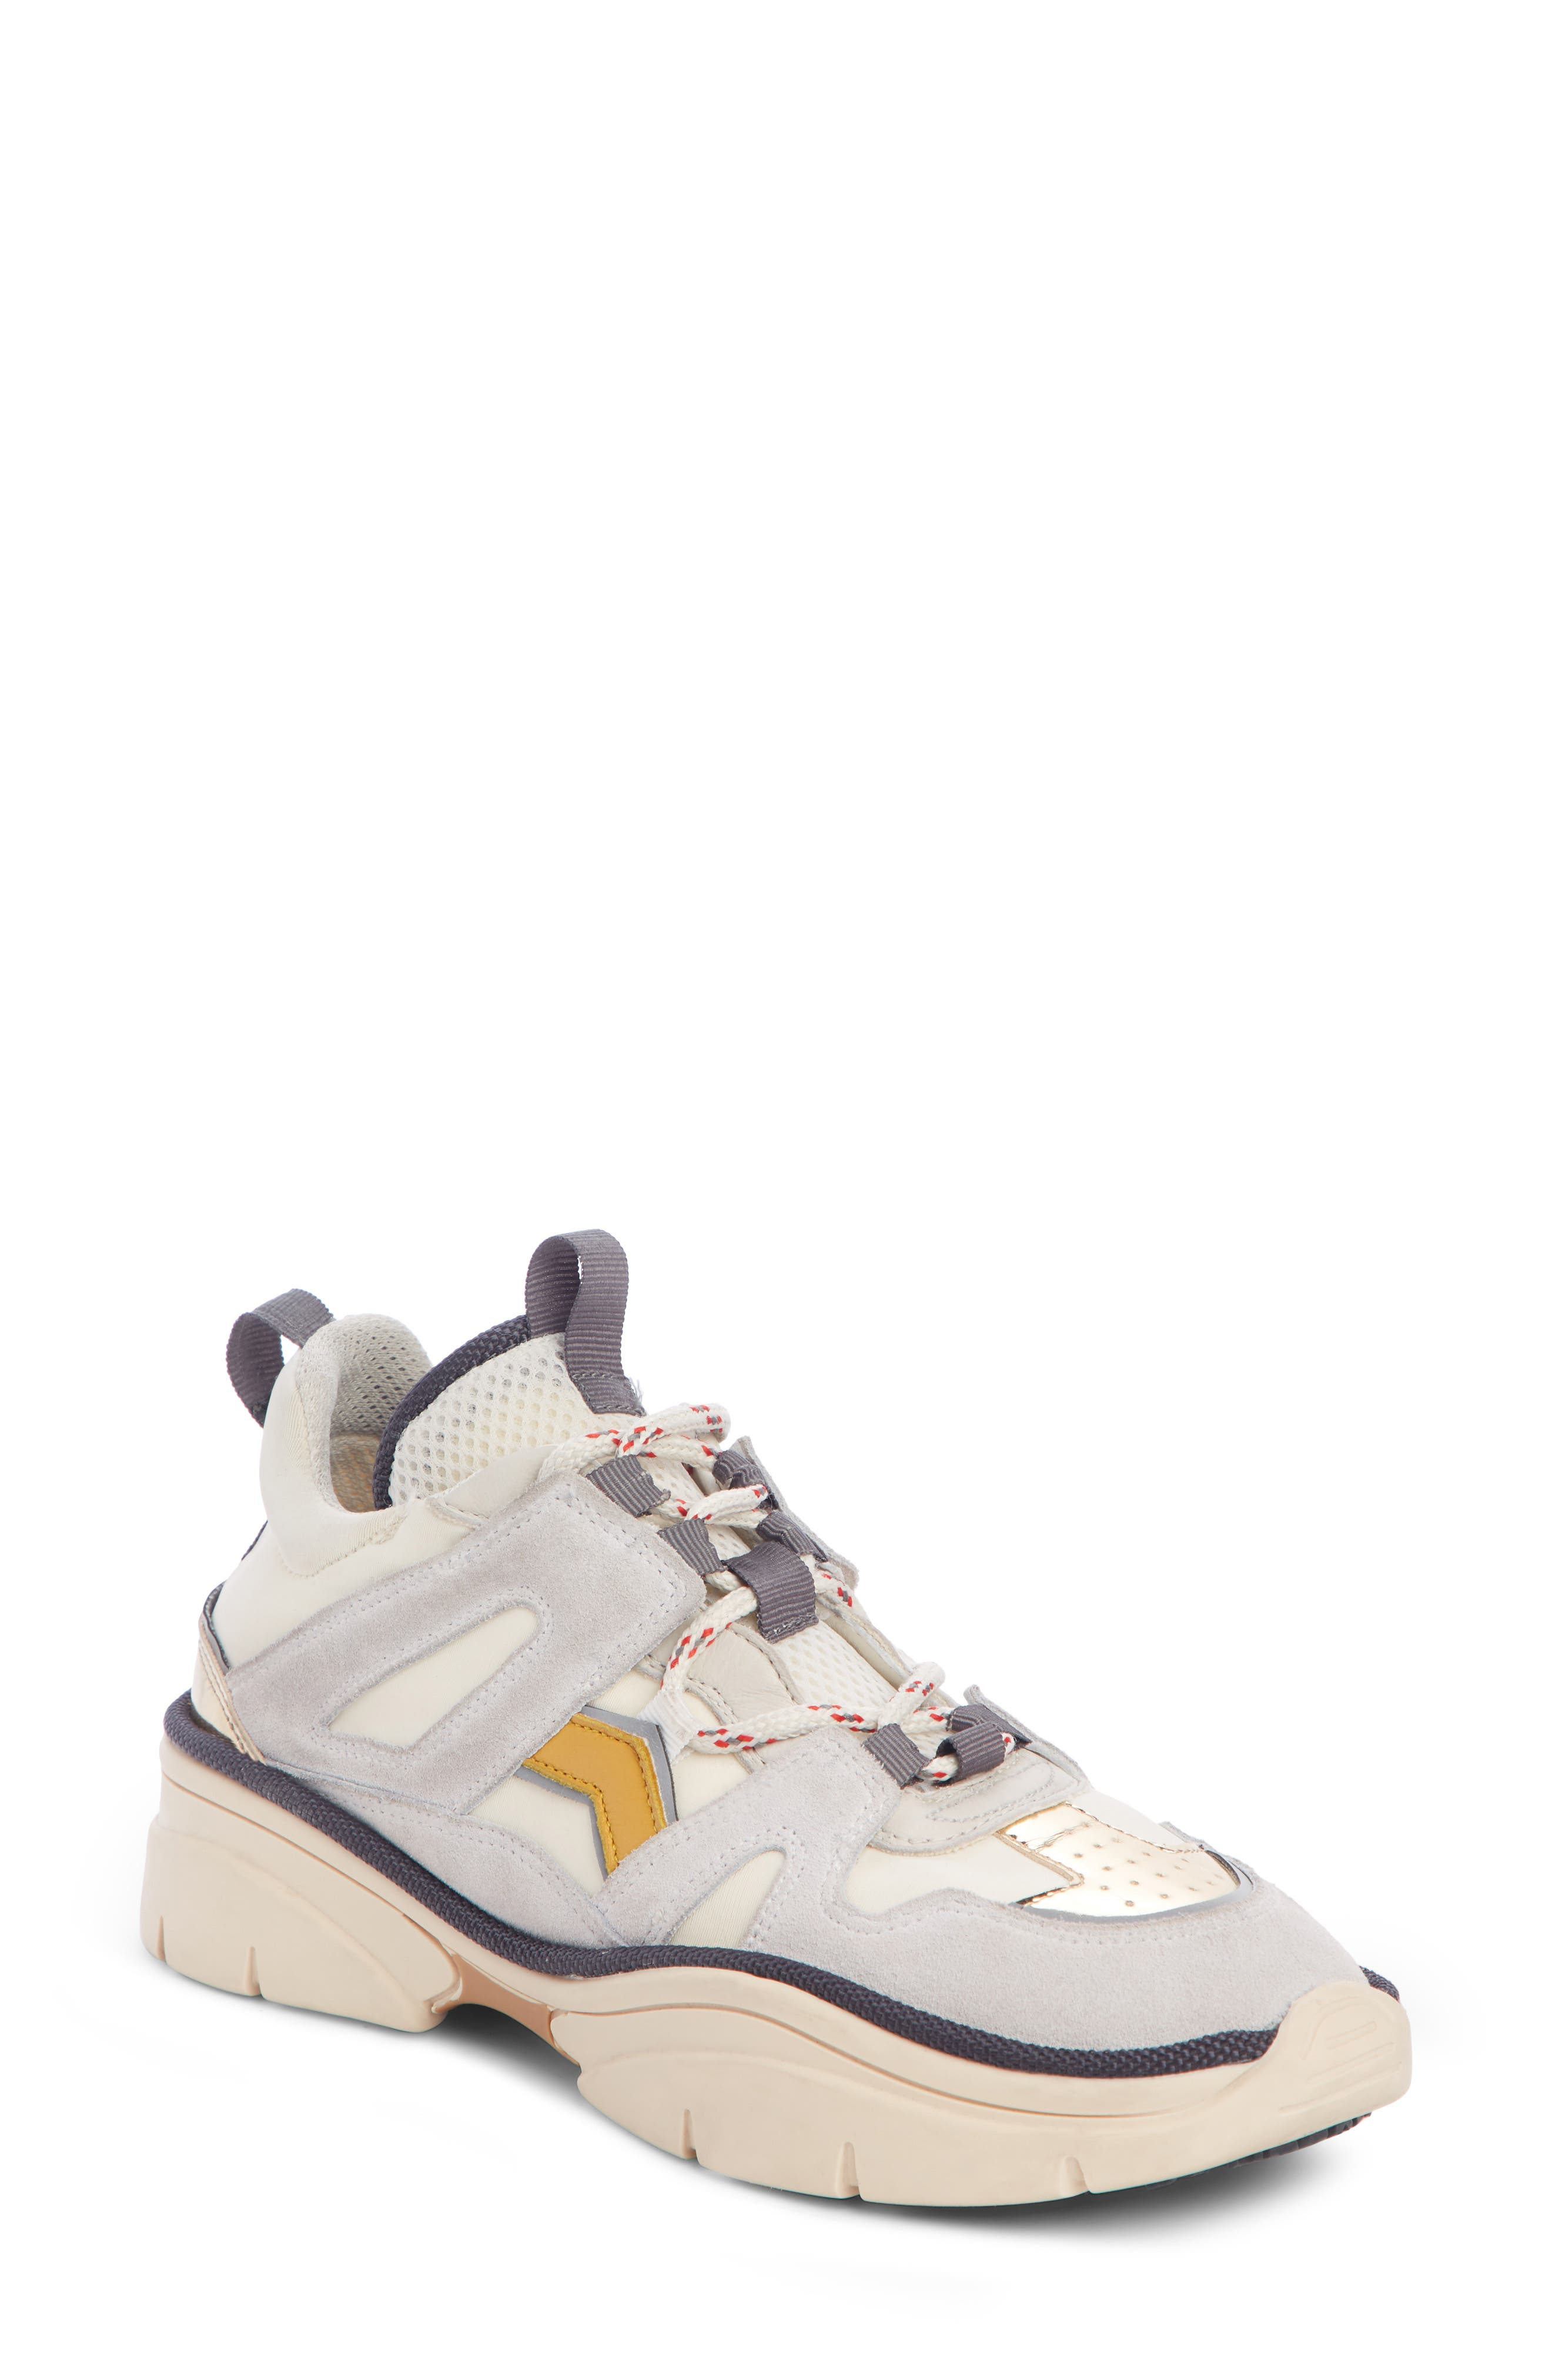 Kindsay Lace-Up Sneaker, Main, color, WHITE